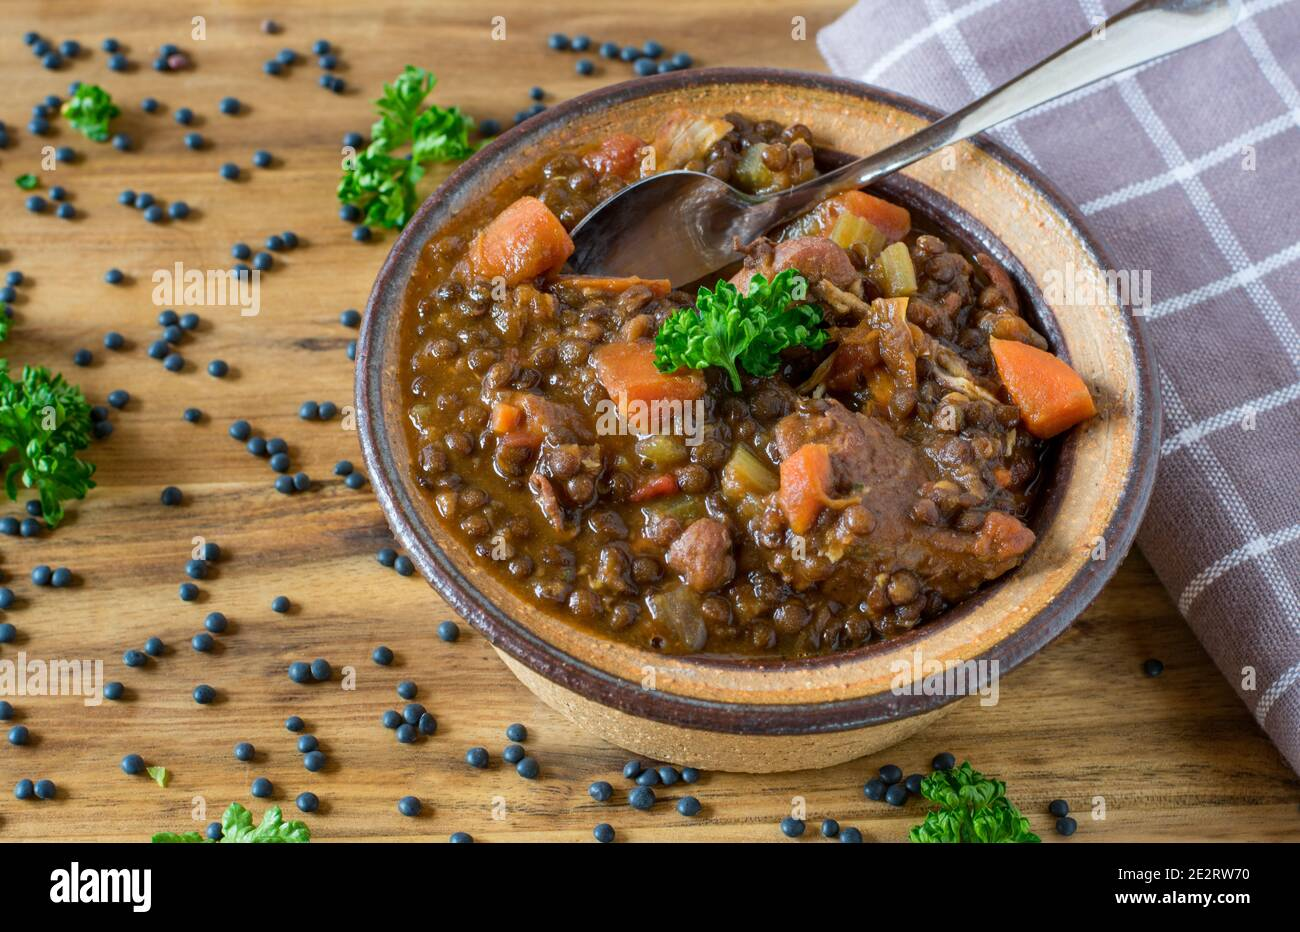 lentil soup with meat  in a bowl  on wooden background from above Stock Photo